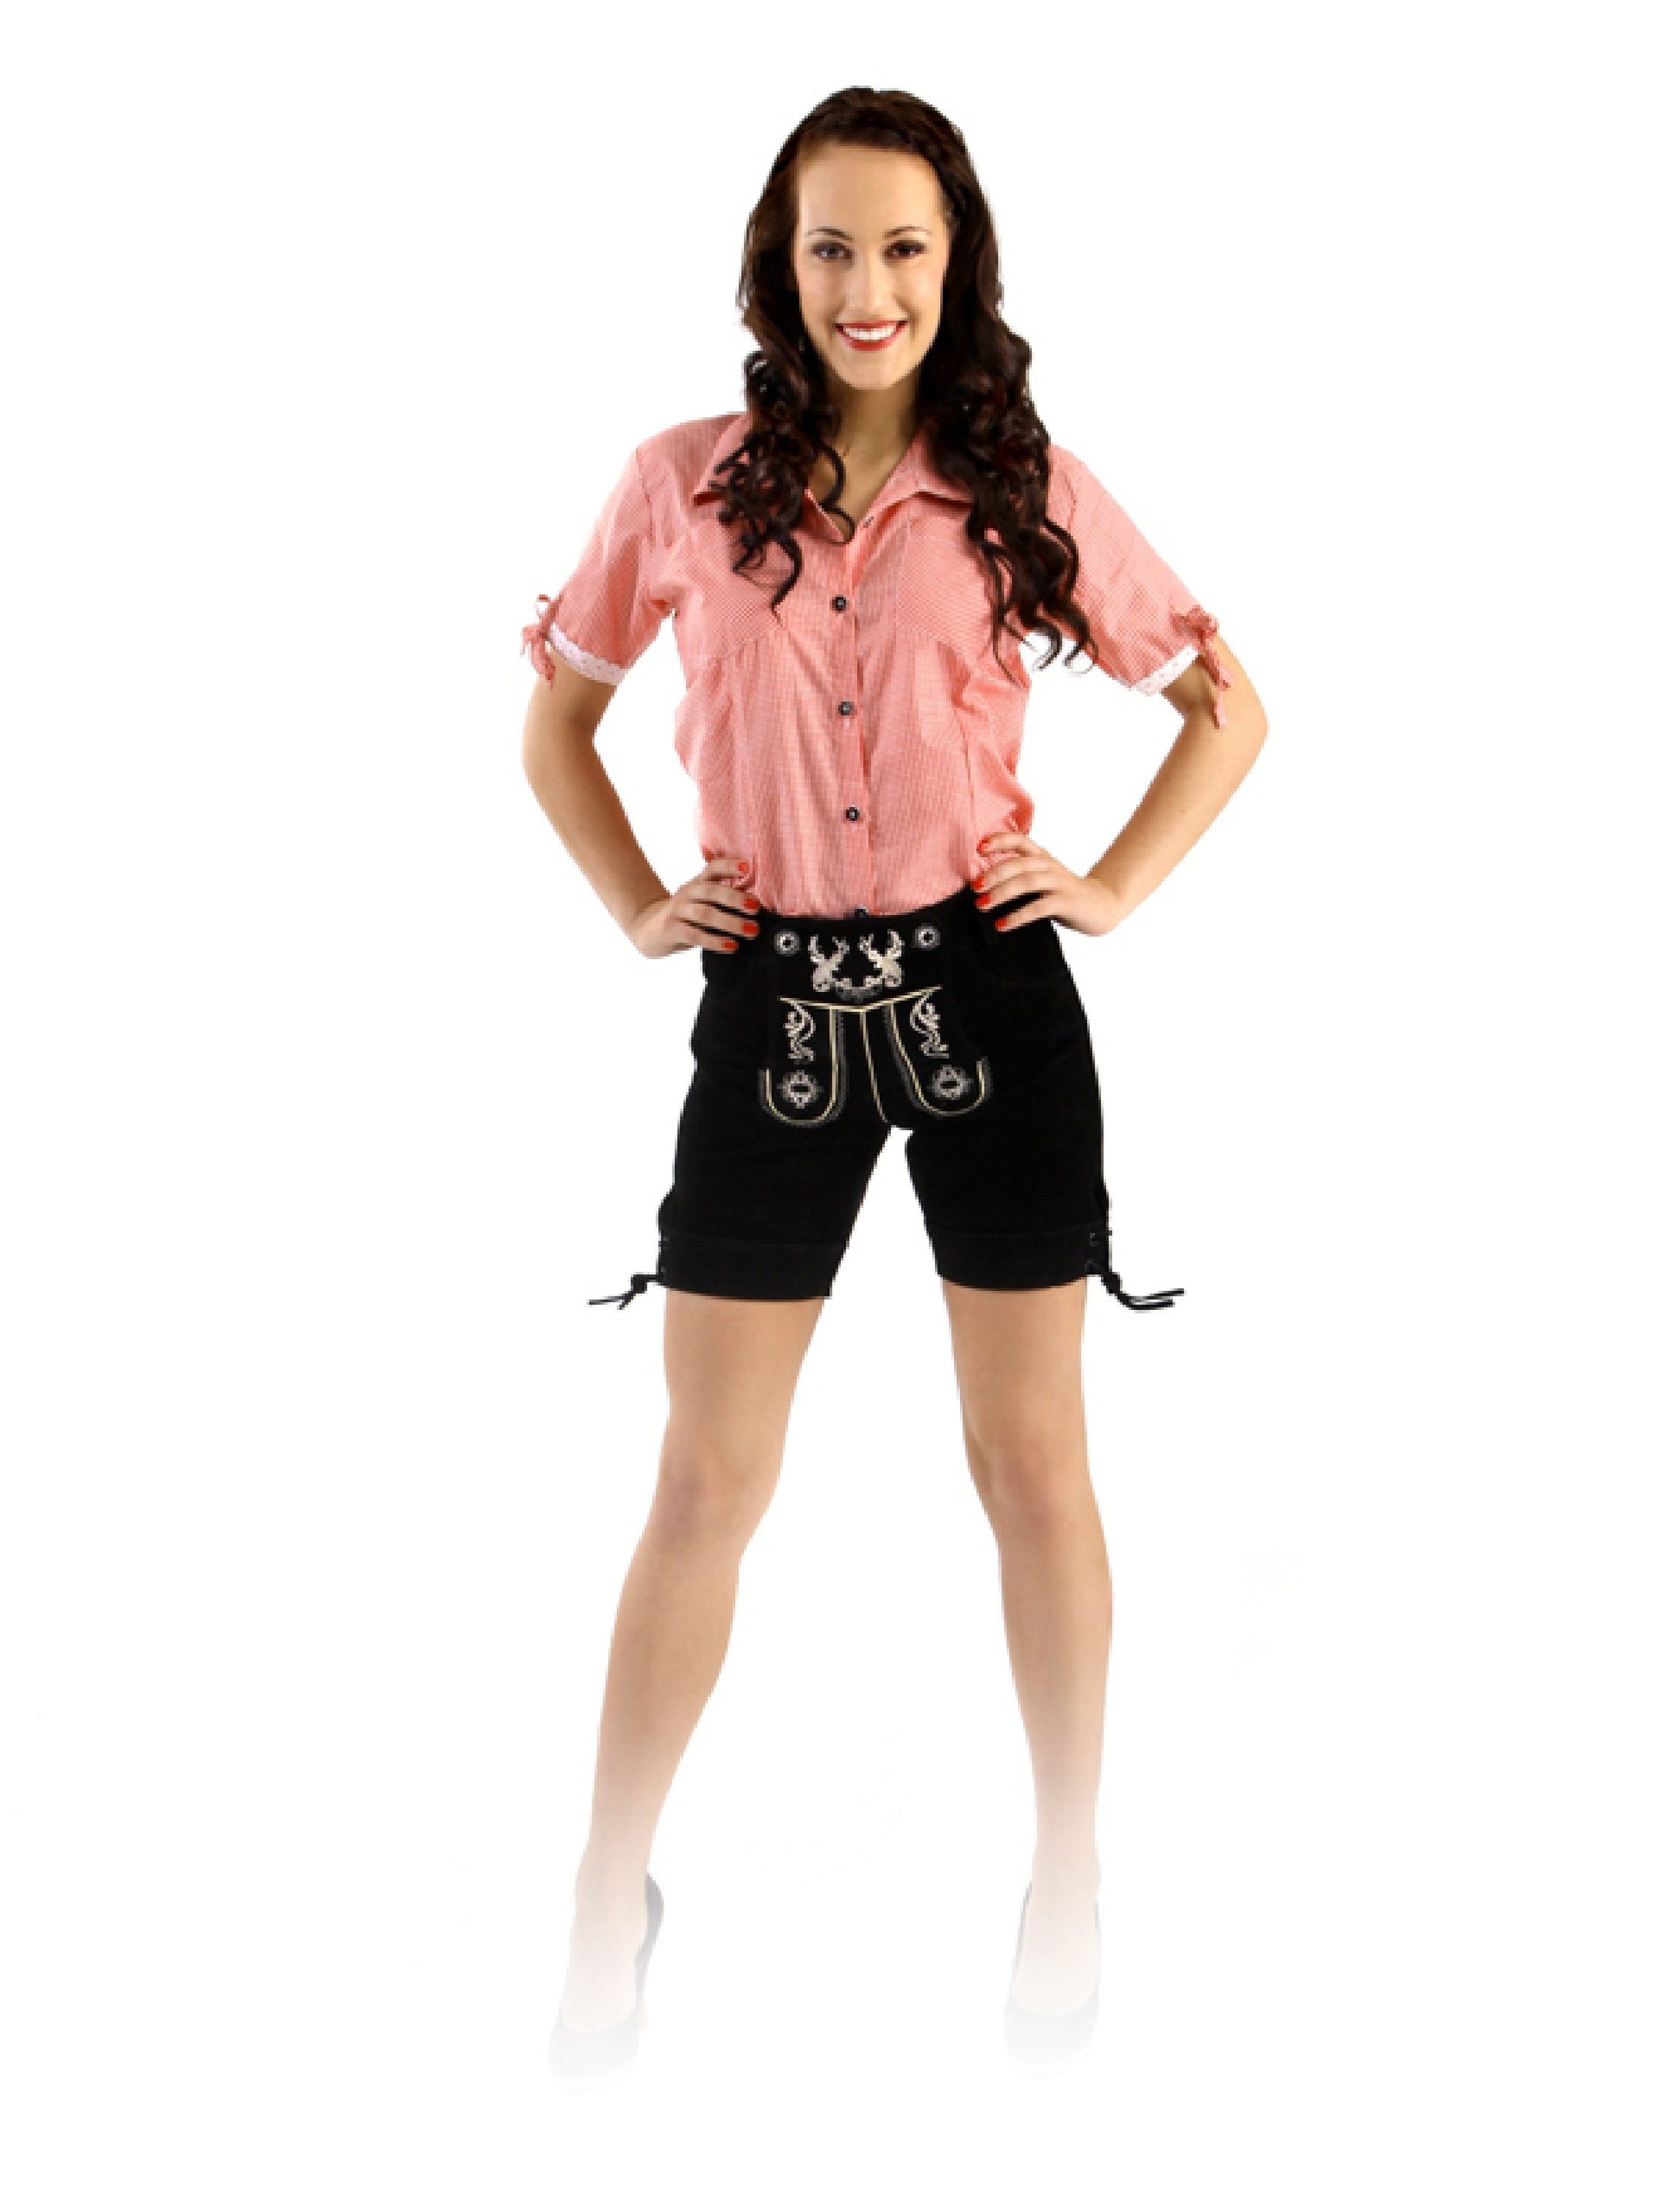 Bavarian ladies lederhosen set Betty black (3-piece) with Blouse Jessi  (pink-check) 47c62c0b24